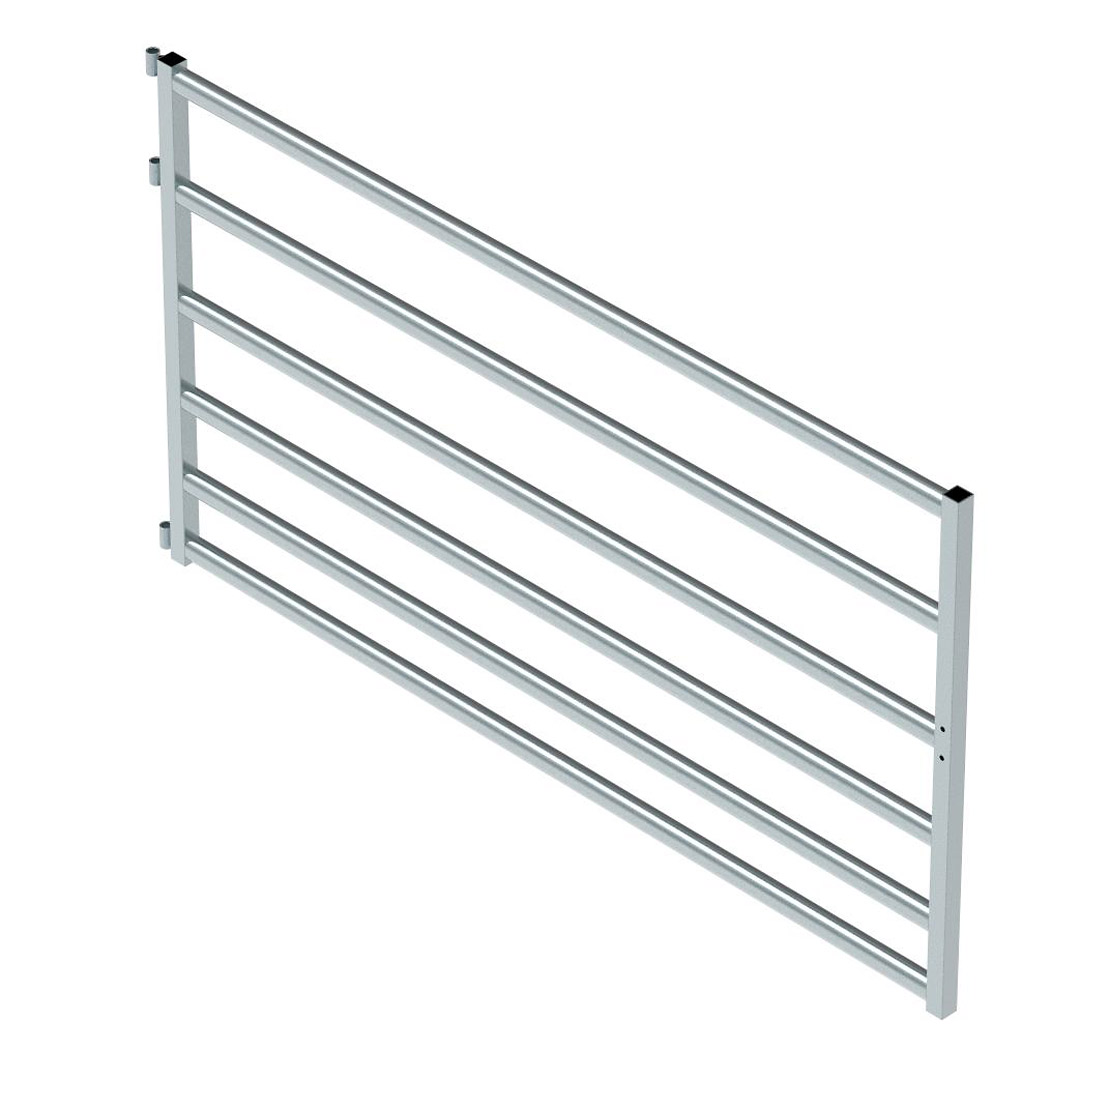 Cattle Yard Gate 6 Rail (2500mm x 1400mm High)